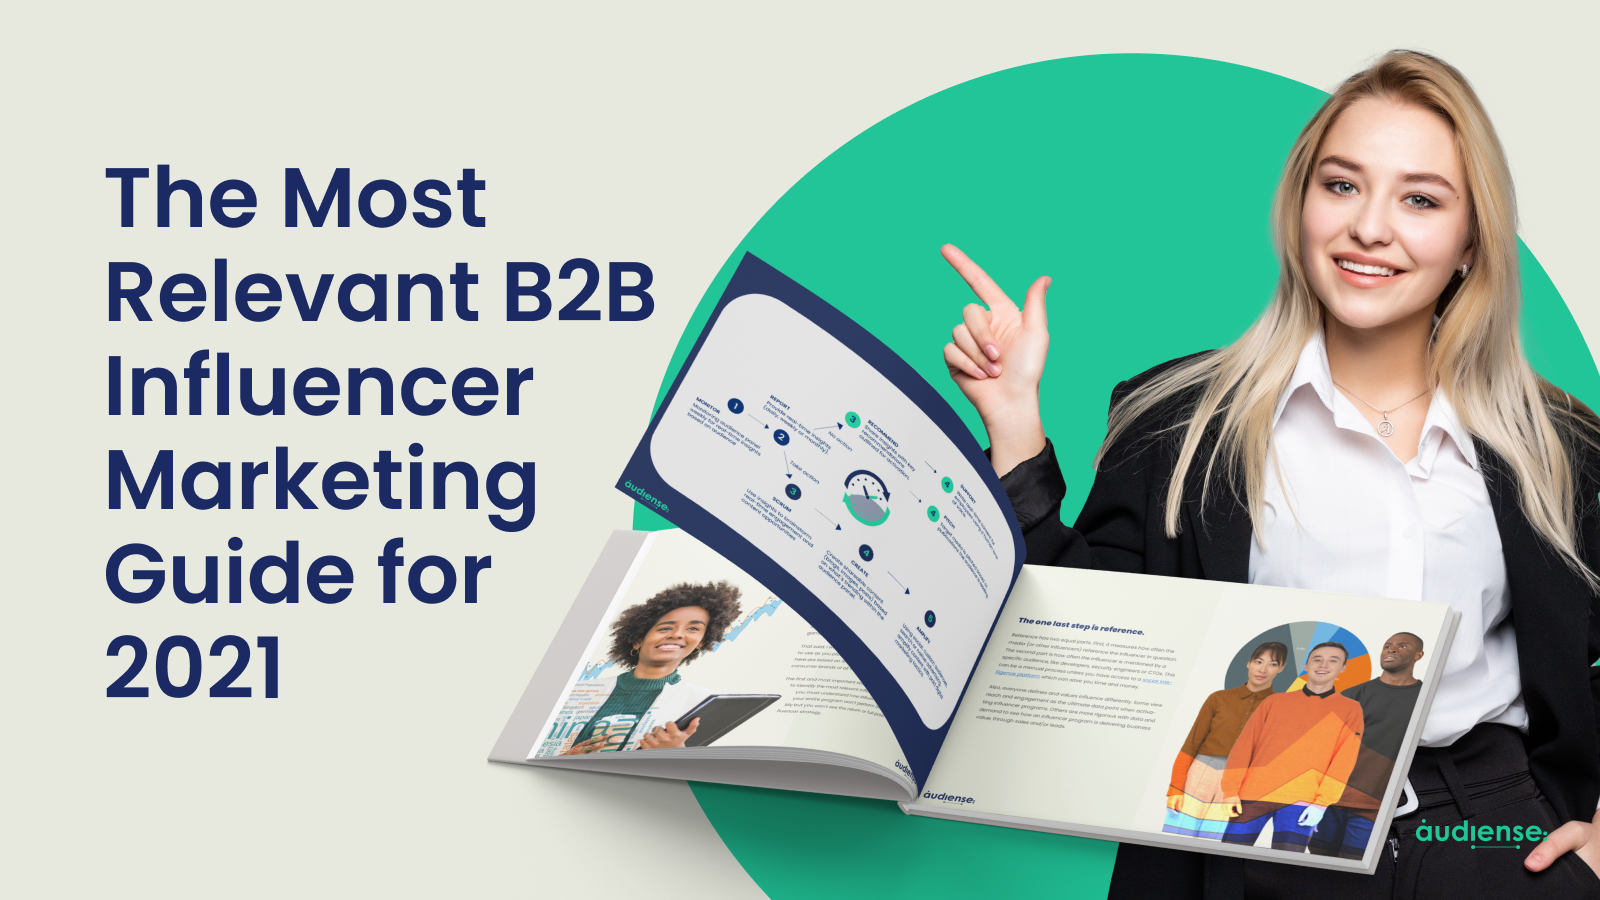 B2B Influencer Marketing: The Most Relevant Guide for 2021